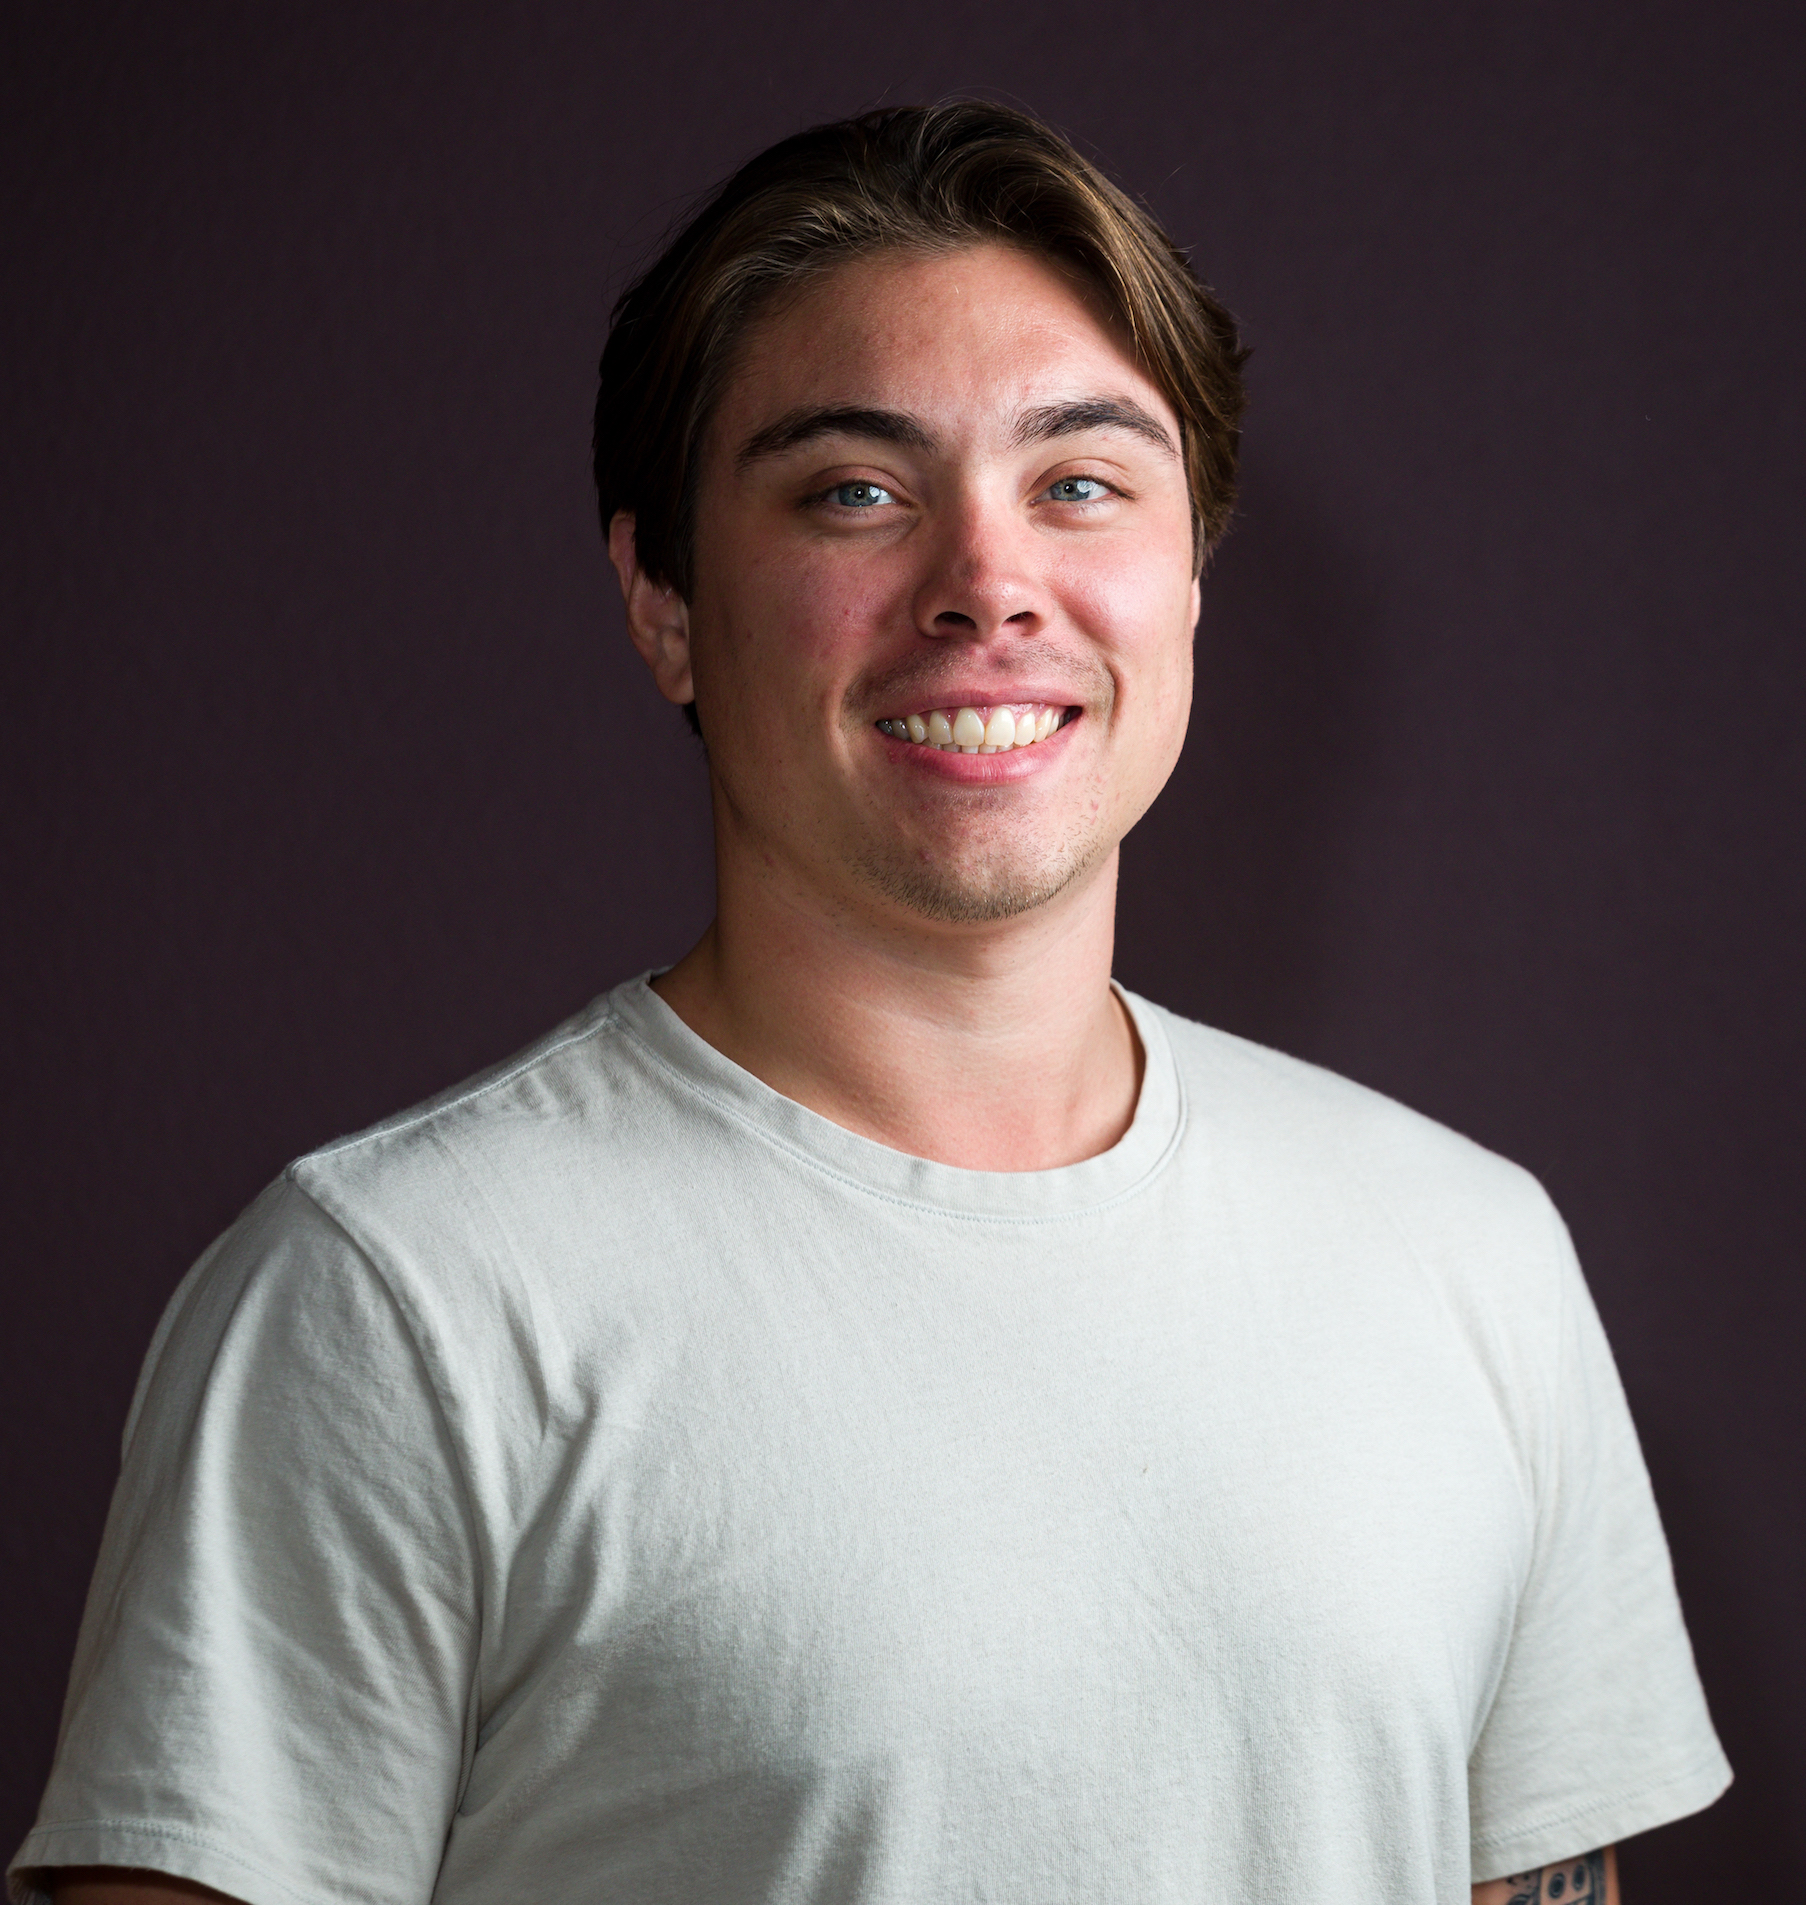 Qcue employee headshot